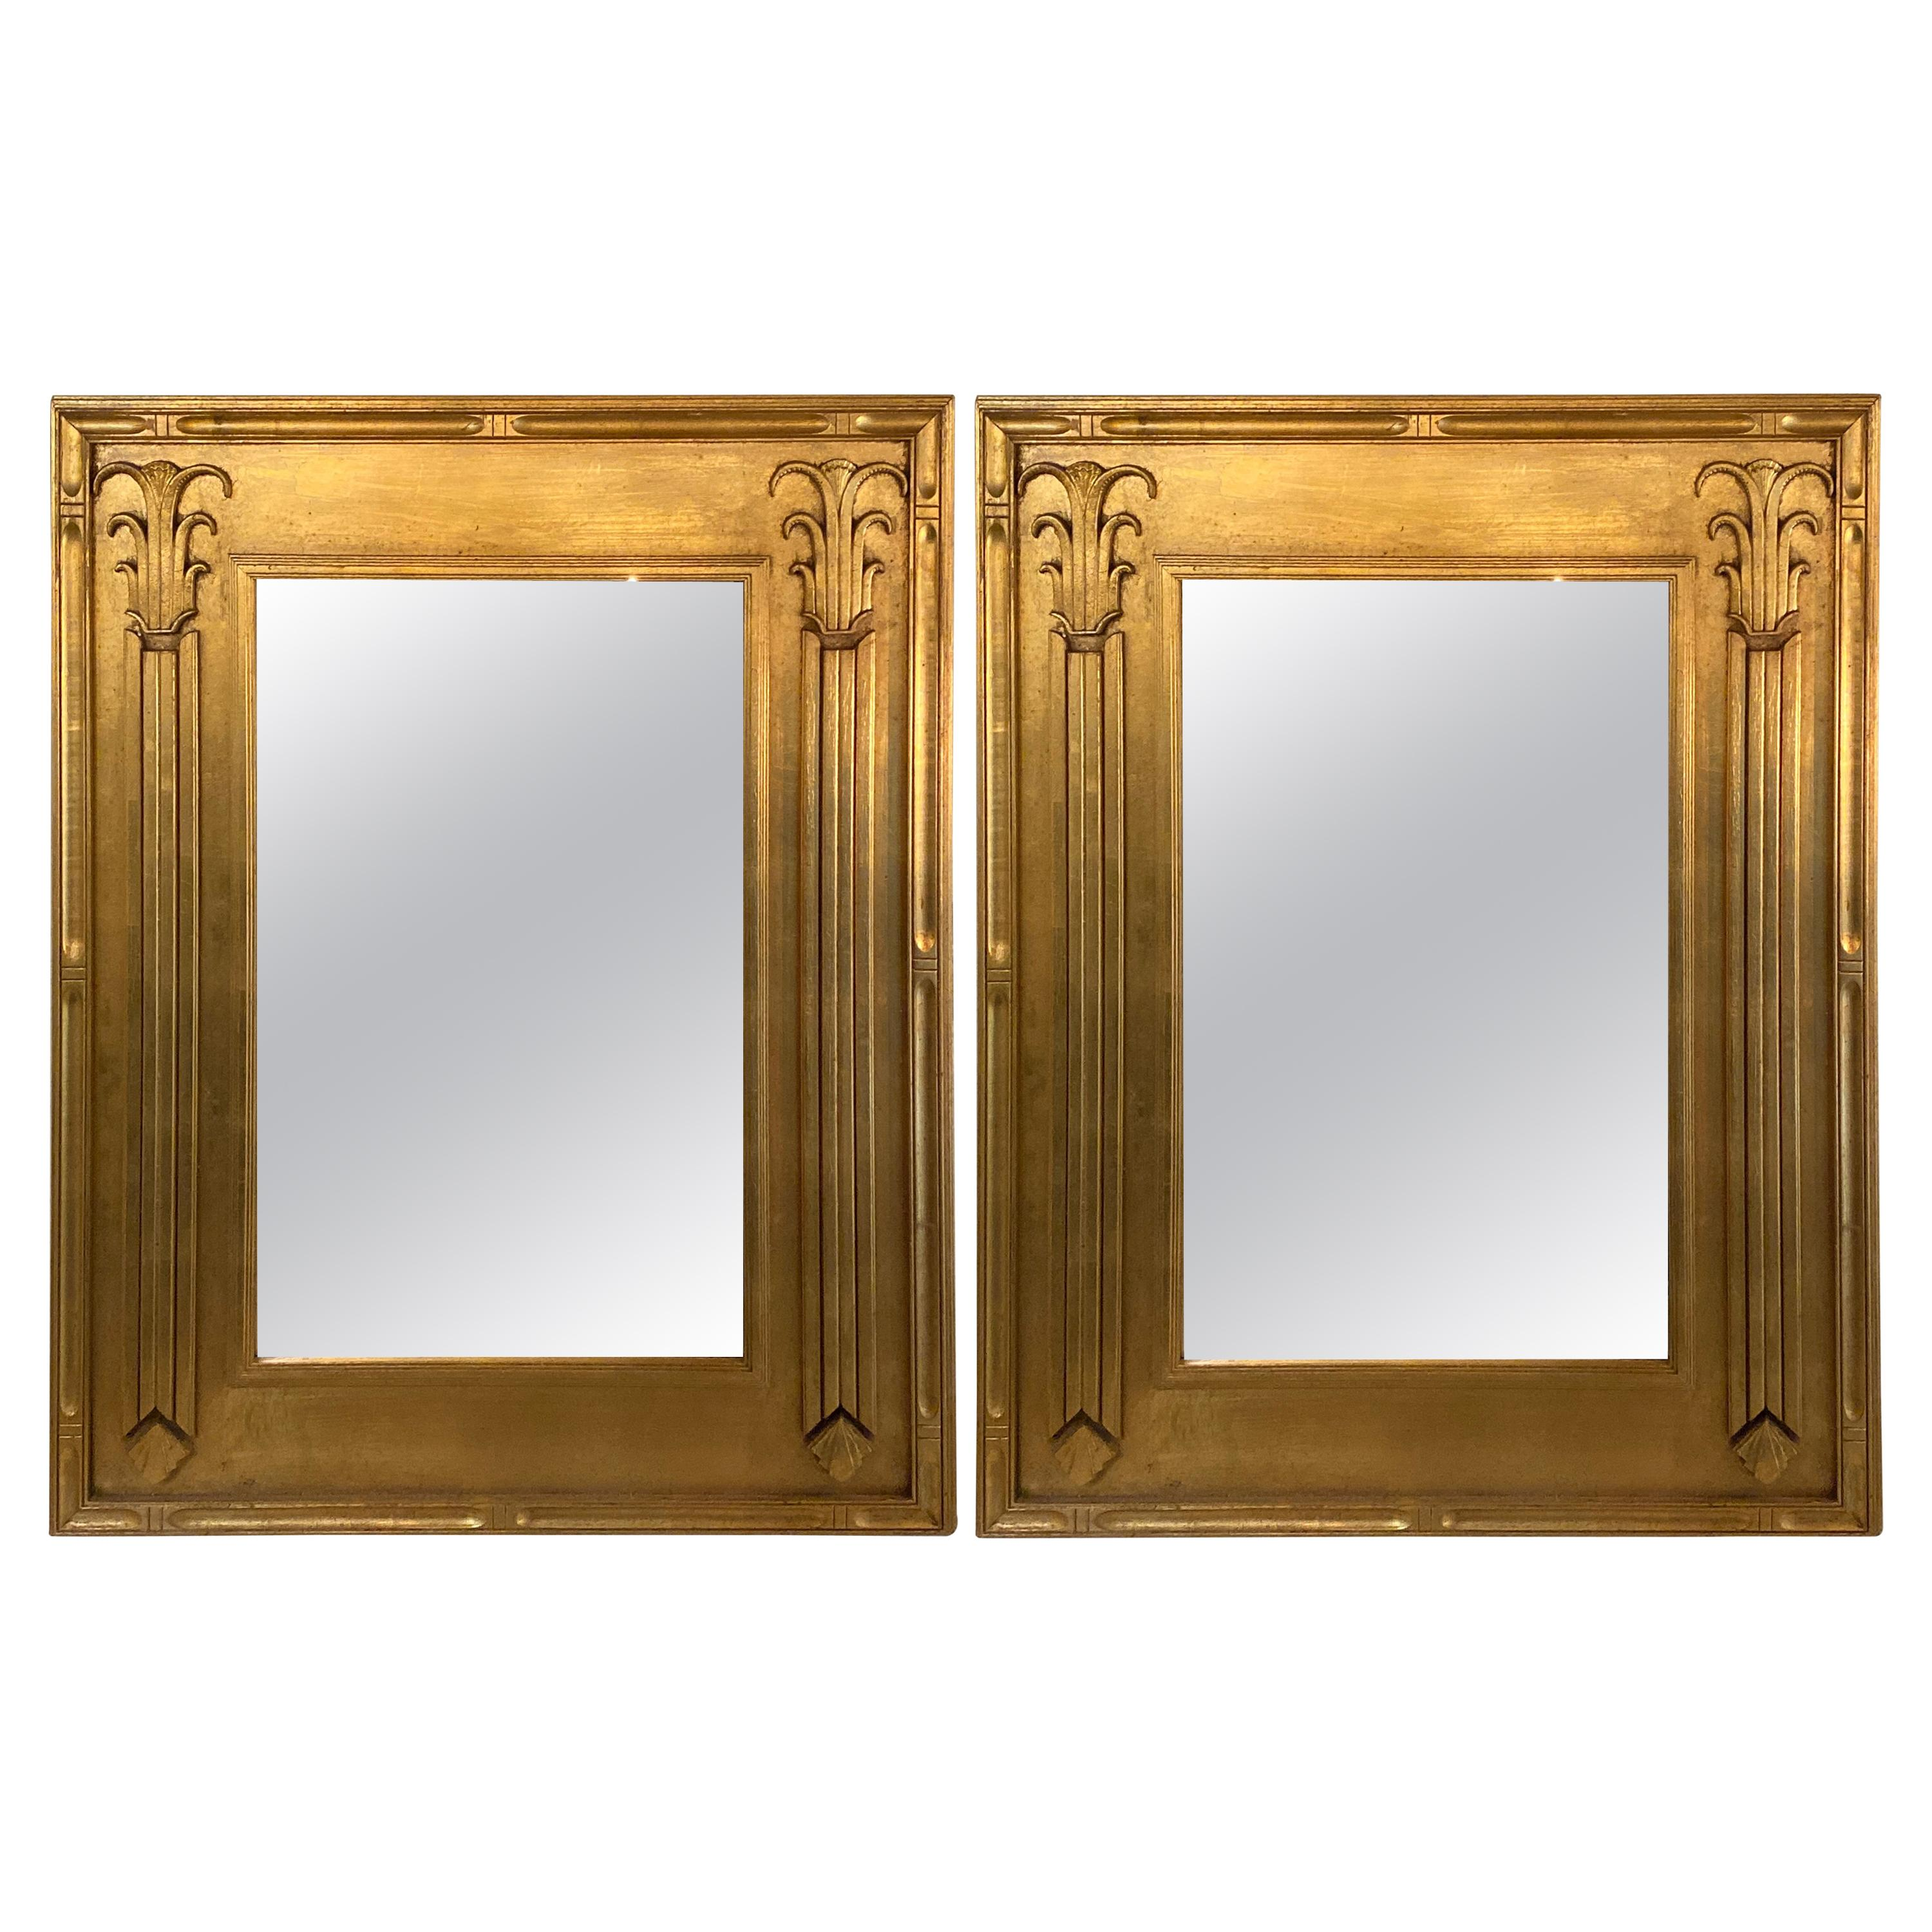 Pair of Art Deco Style Gilt Gold Architecturally Carved Wall or Console Mirrors